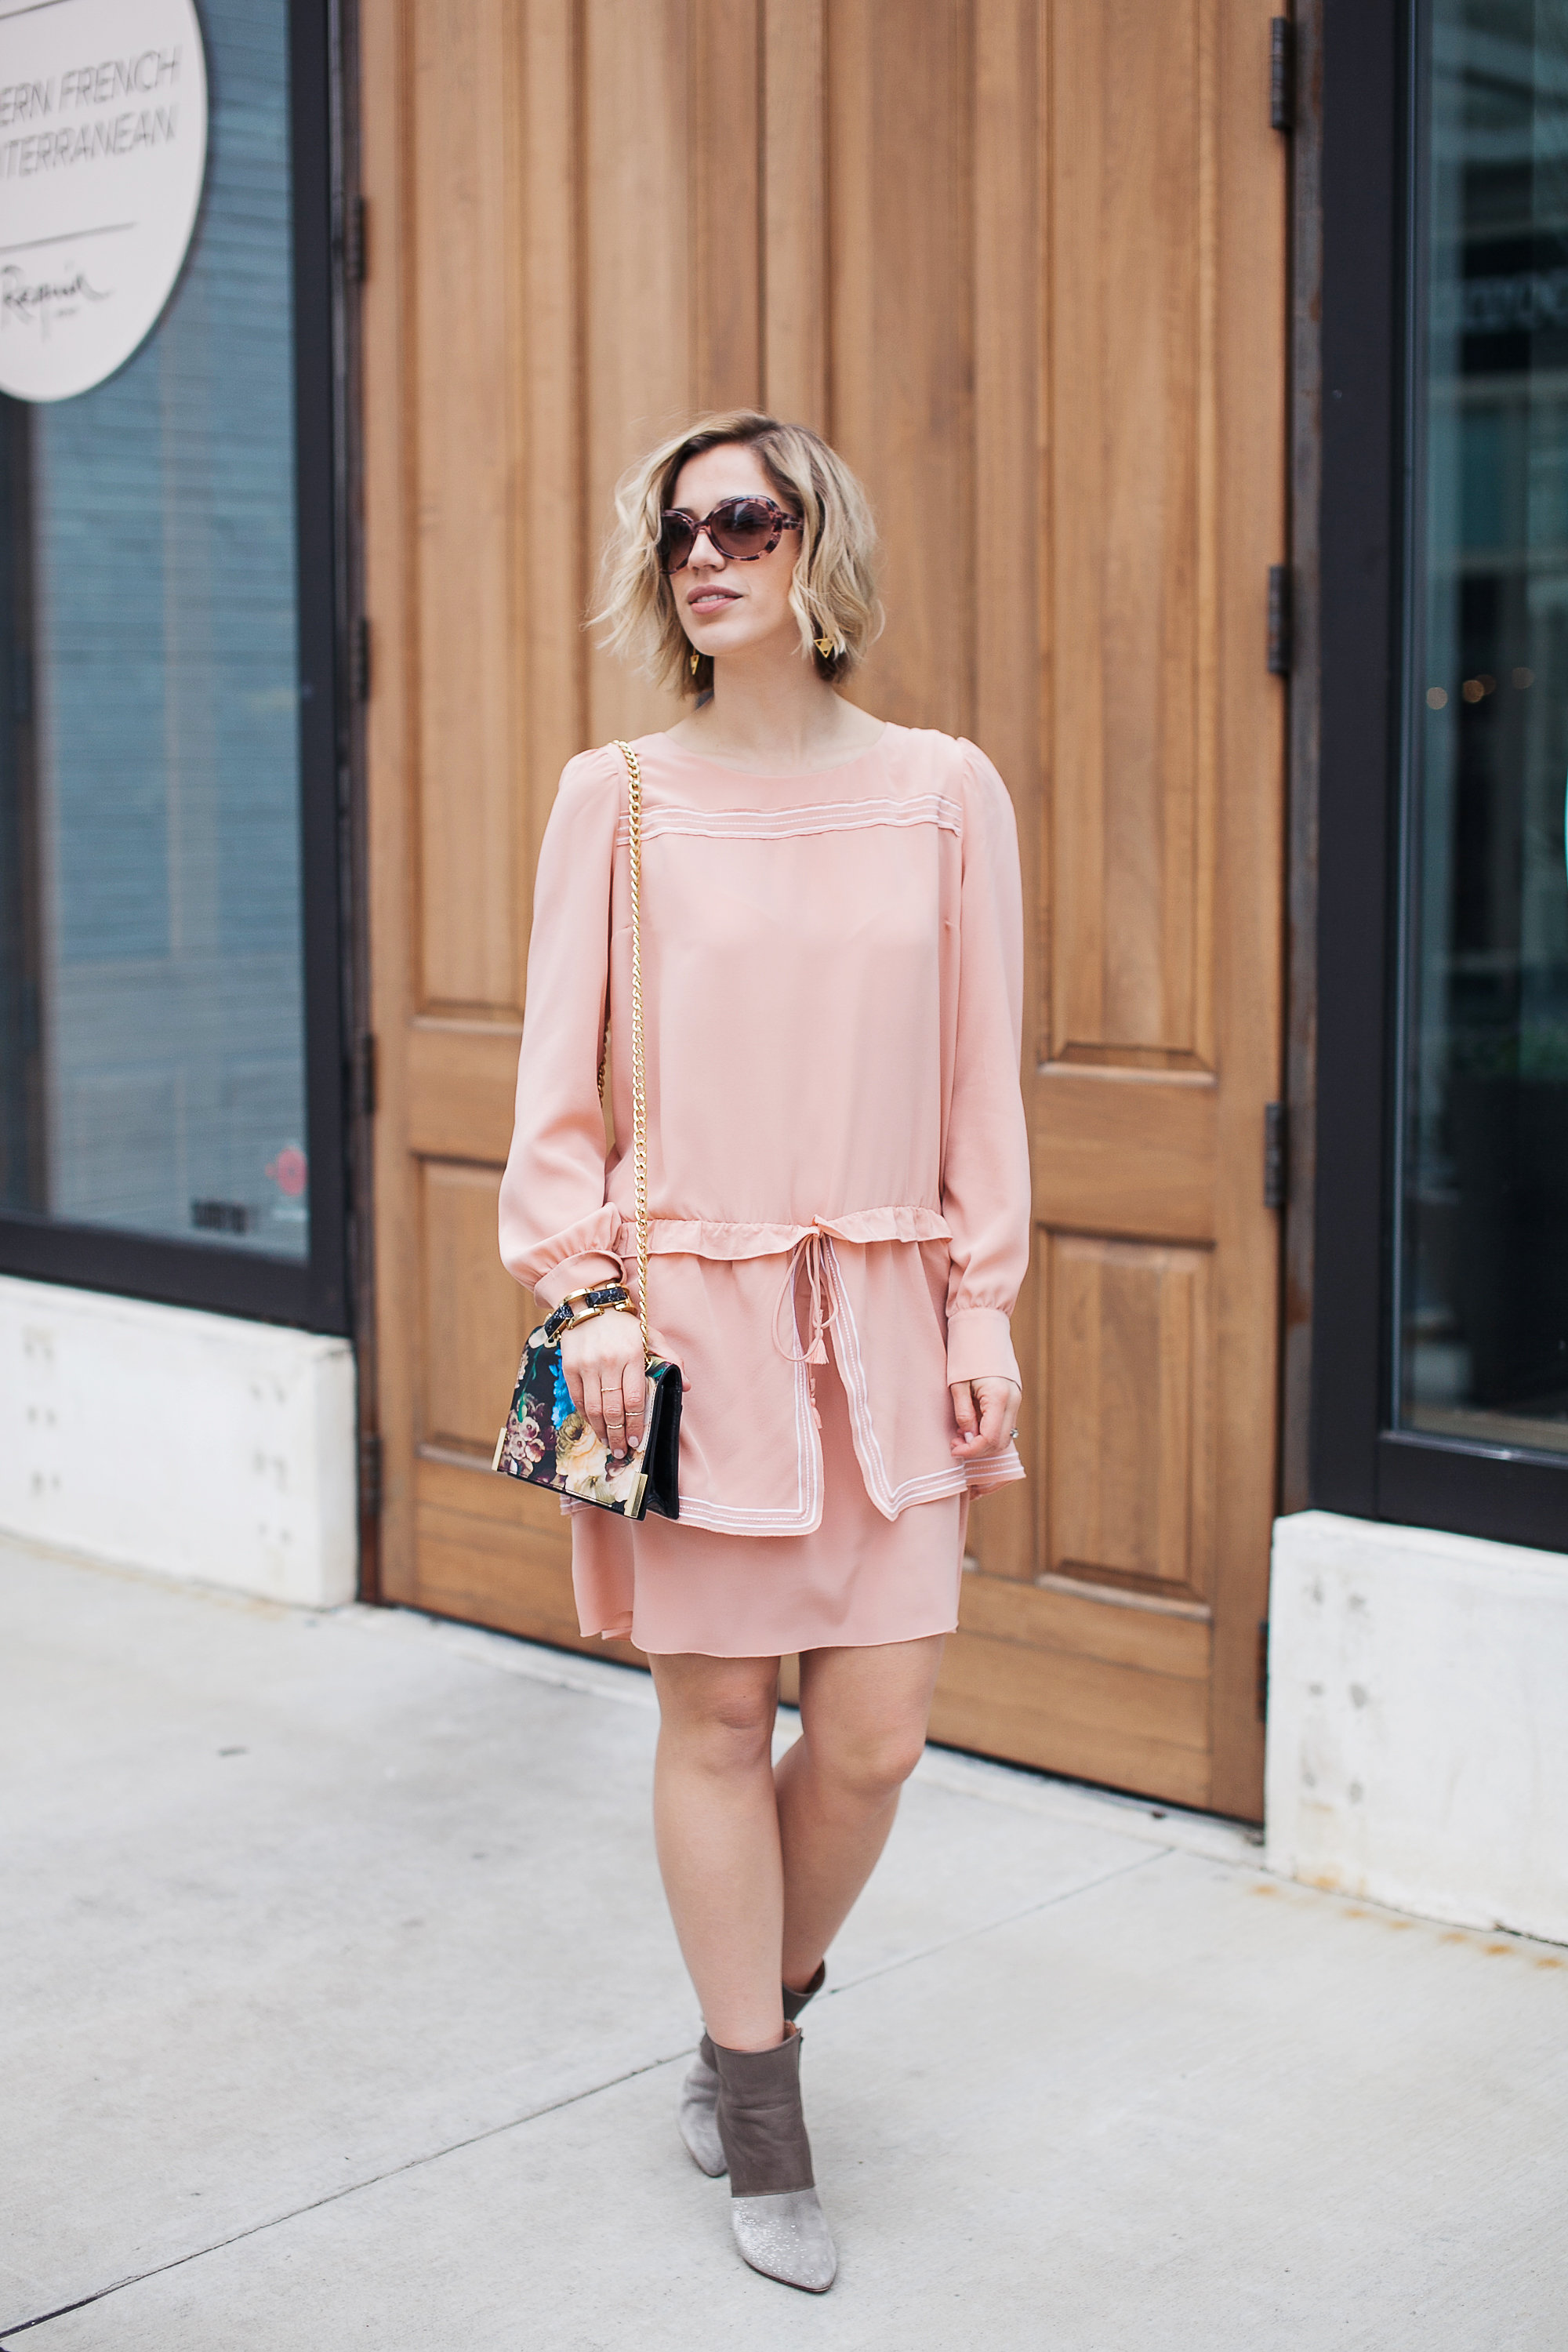 Blush dress + floral clutch + grey booties  (see full outfit post here!)